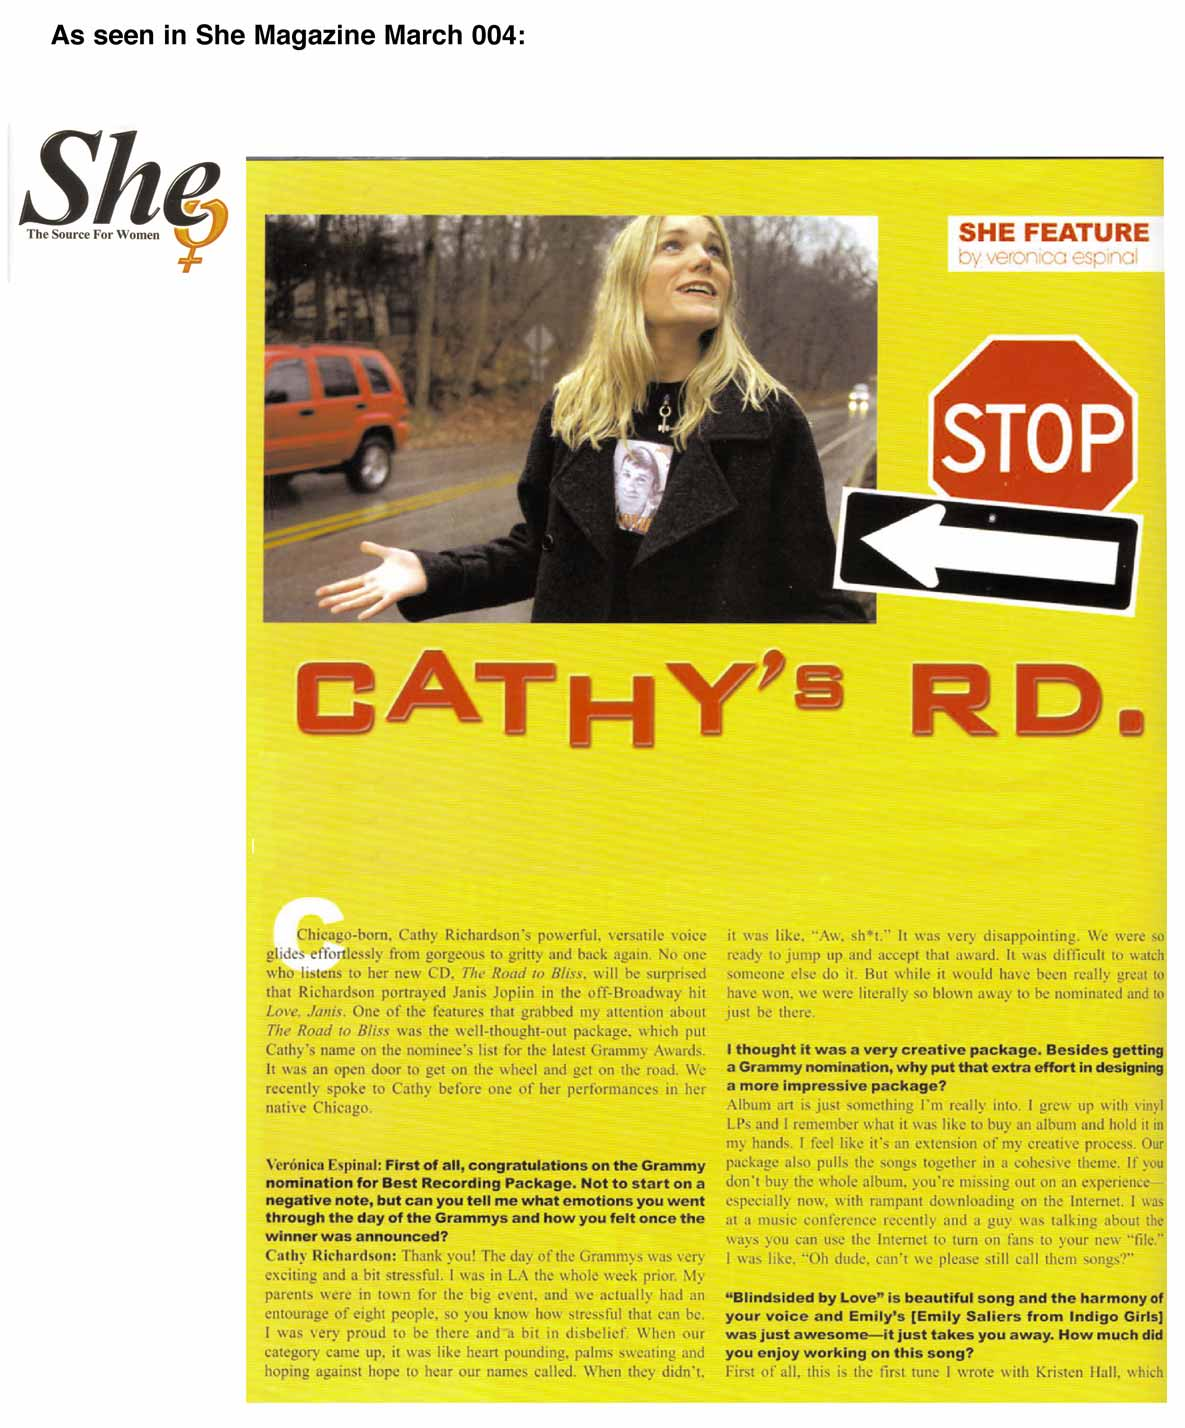 scan of She article